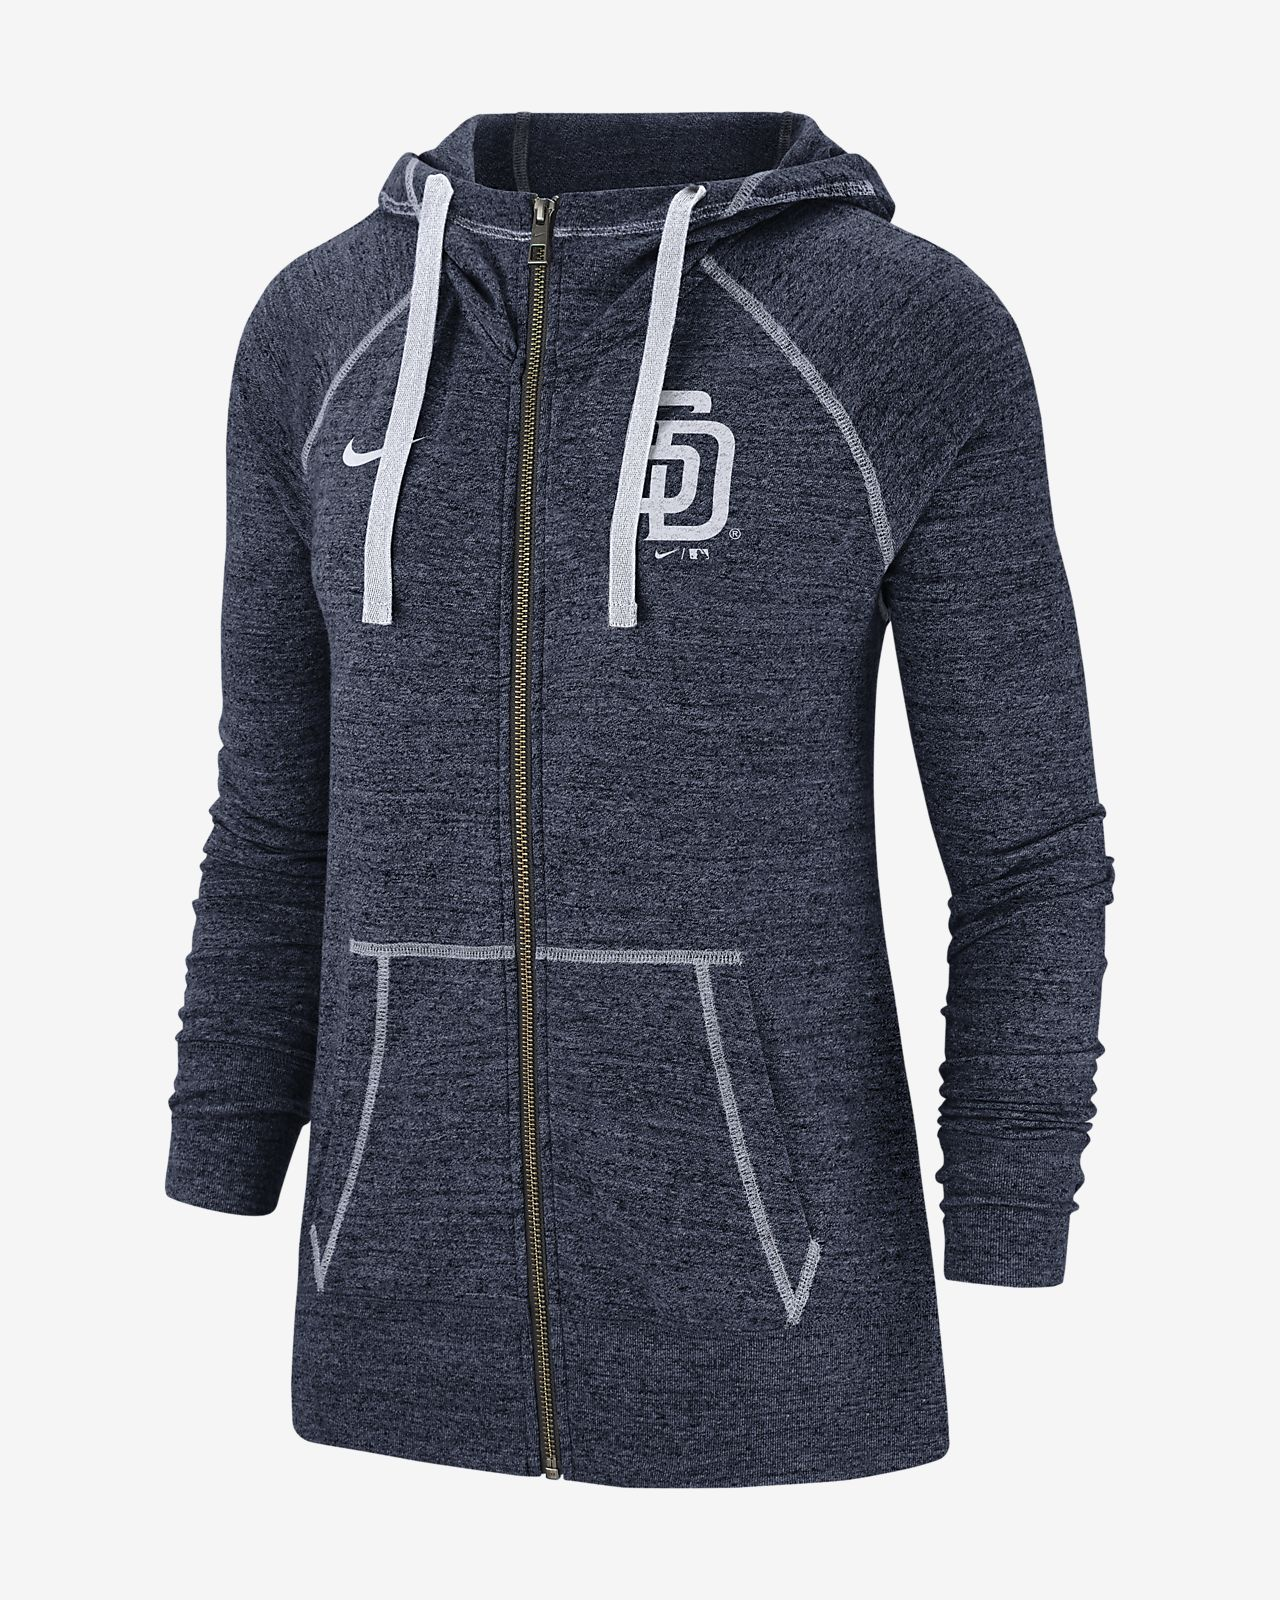 Nike Gym Vintage (MLB Padres) Women's Full-Zip Hoodie